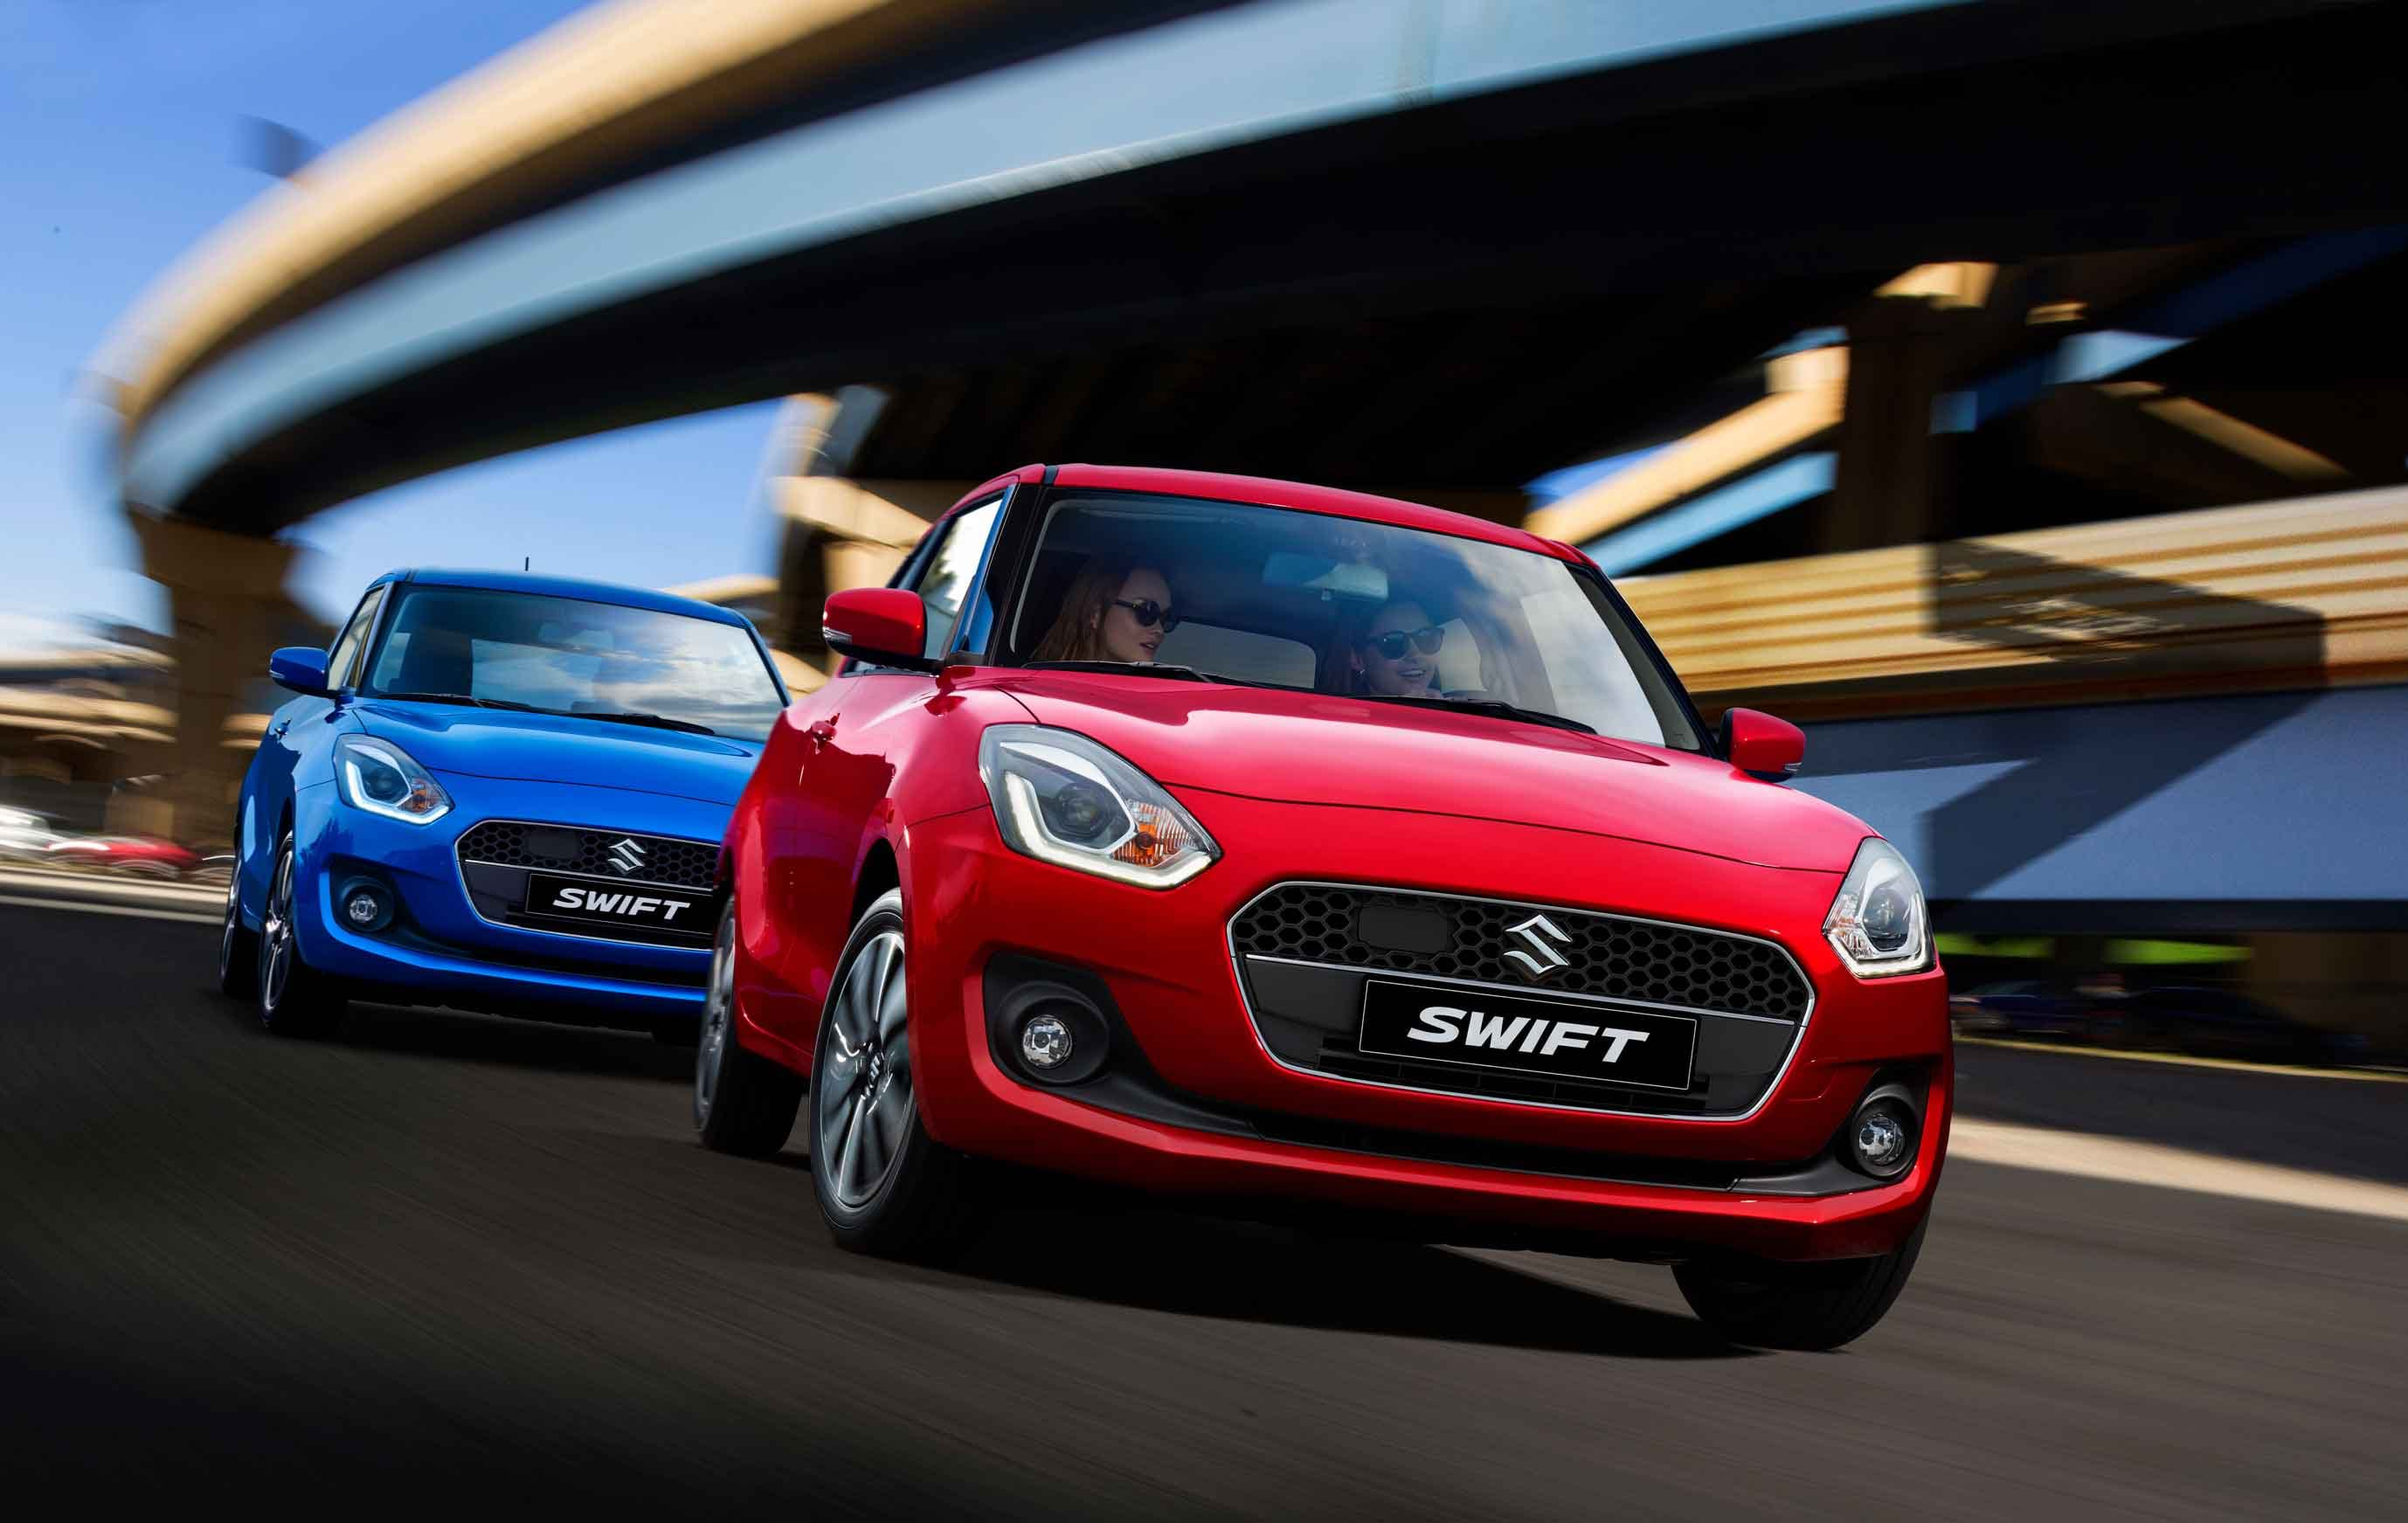 A red Suzuki Swift followed by a blue one